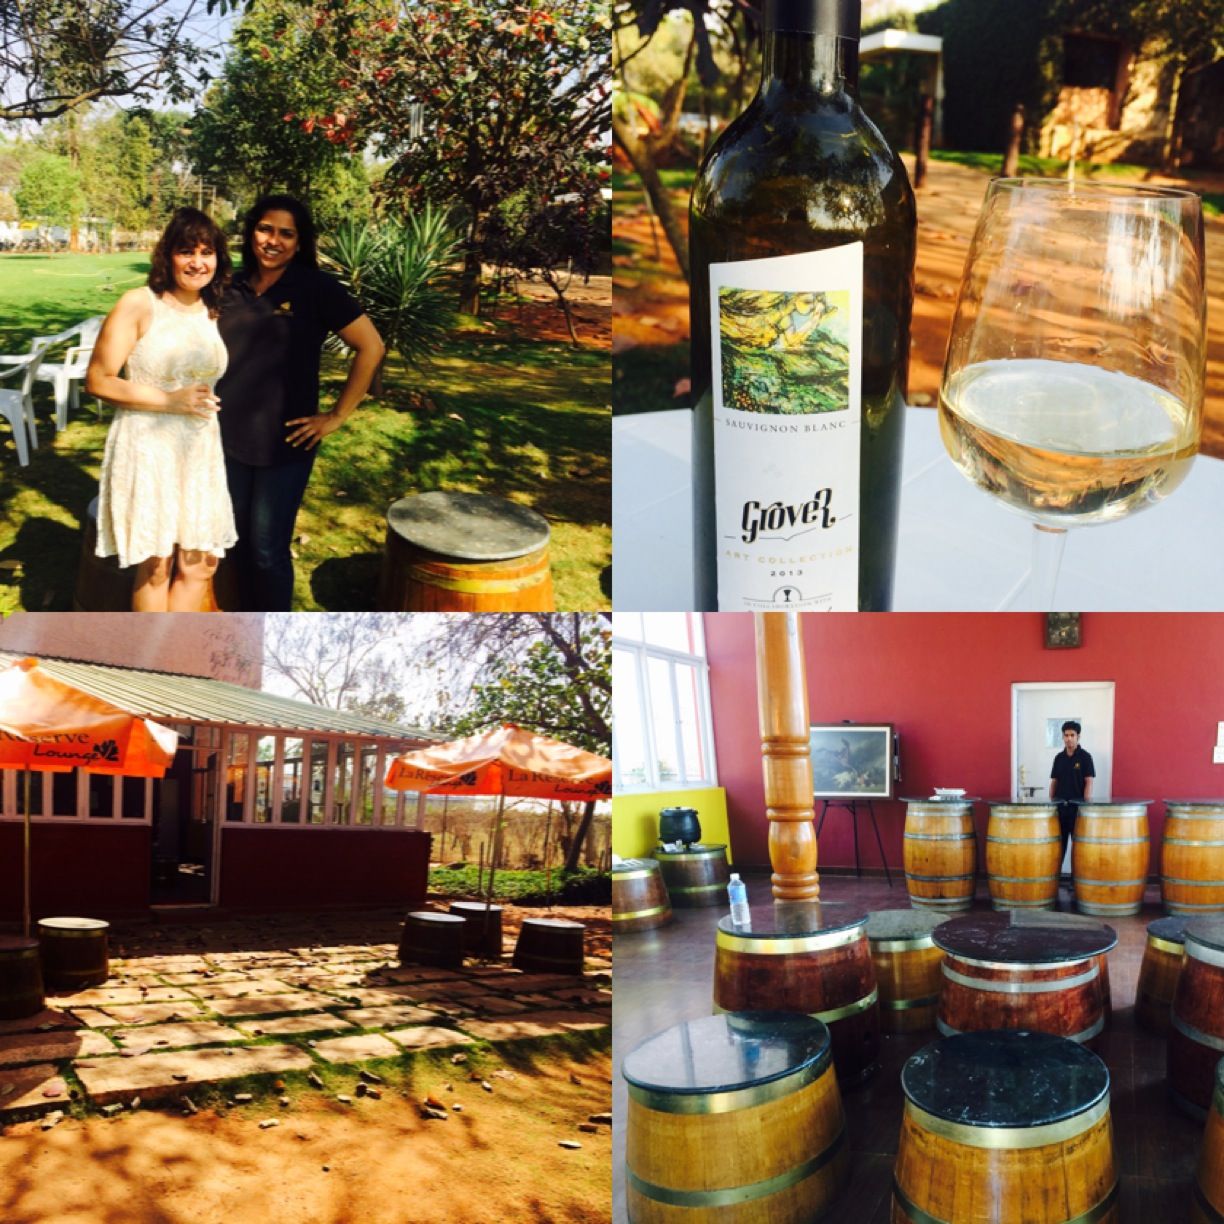 Grover Zampa Nasik, Wine Tourism in India : Grover Zampa Vineyards, Nandi Hills ...